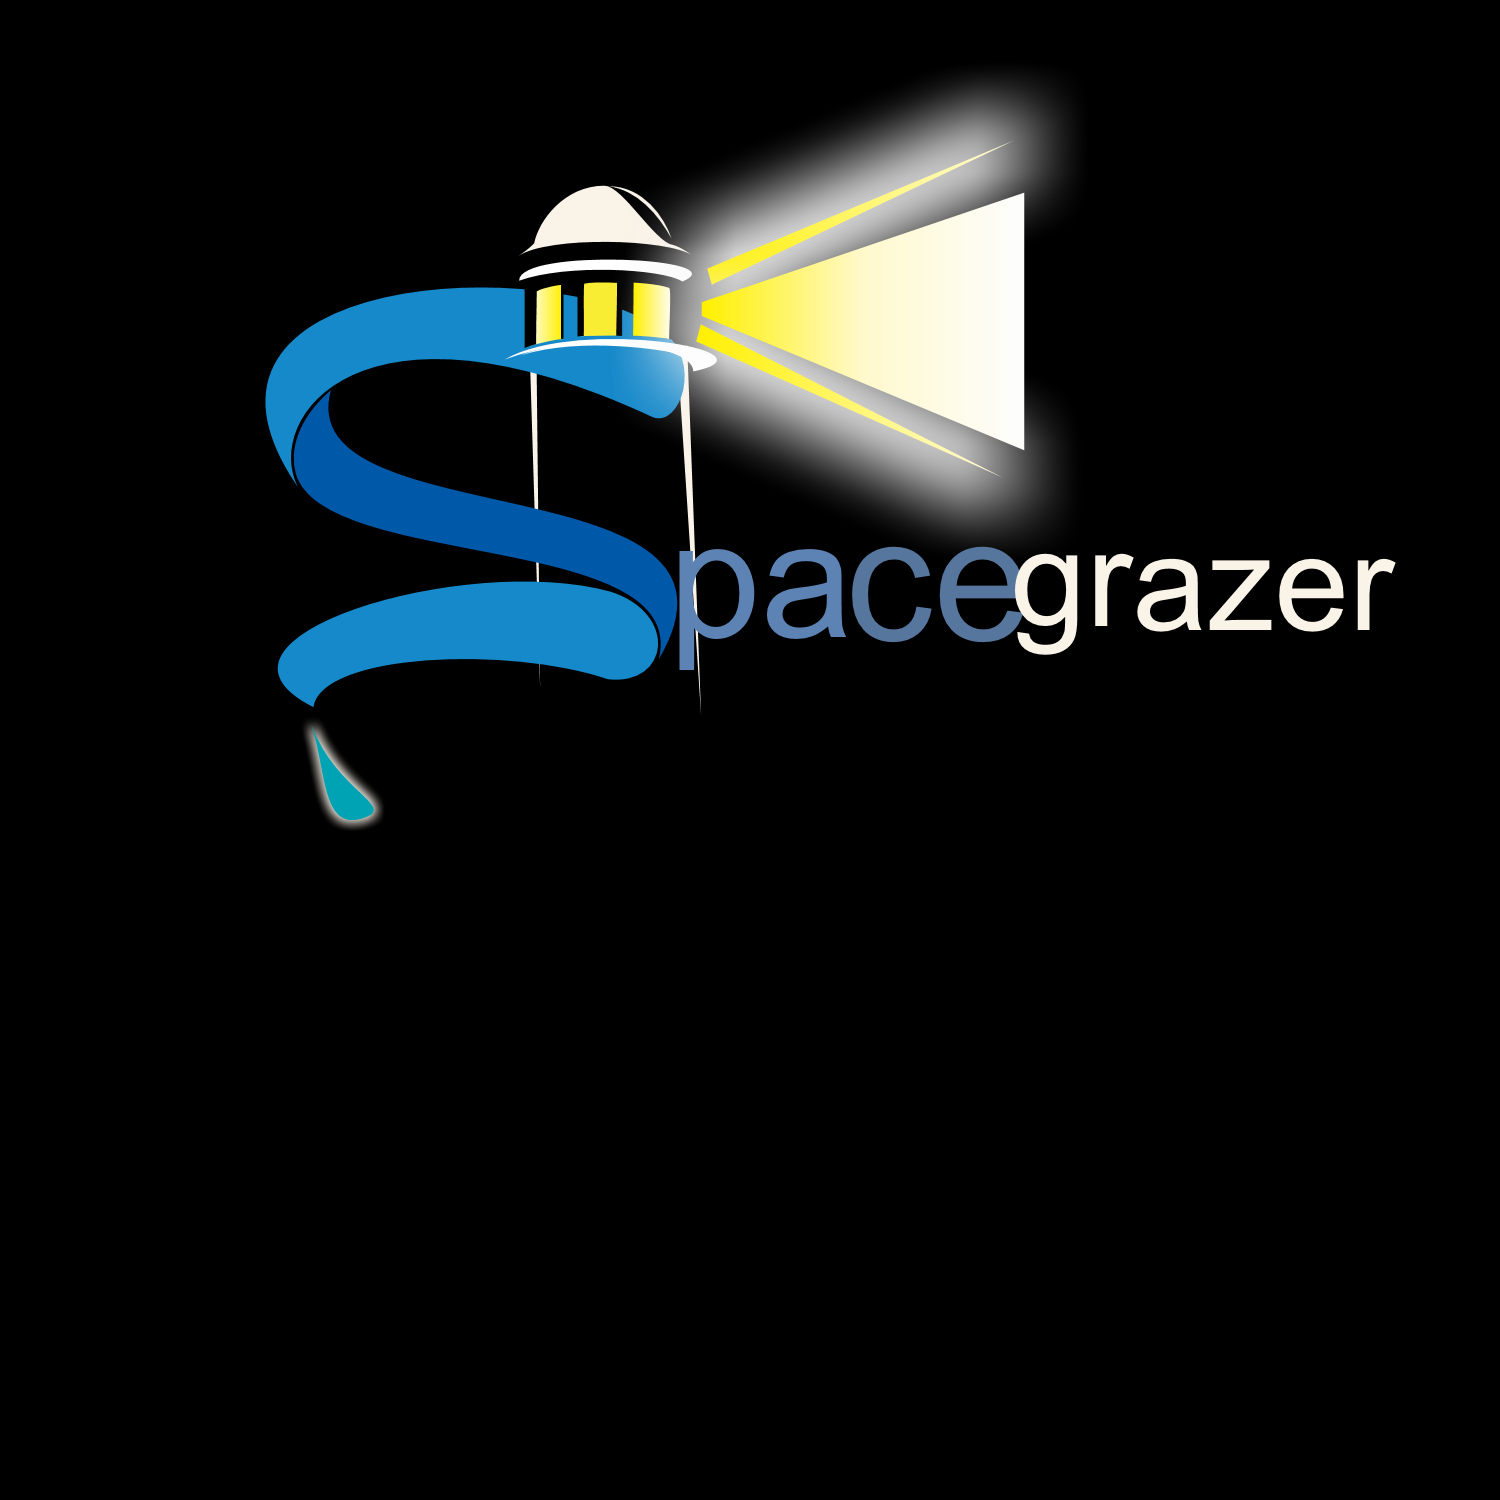 Logo Design by Melanie Fitzpatrick - Entry No. 18 in the Logo Design Contest Fun Logo Design for Spacegrazer.